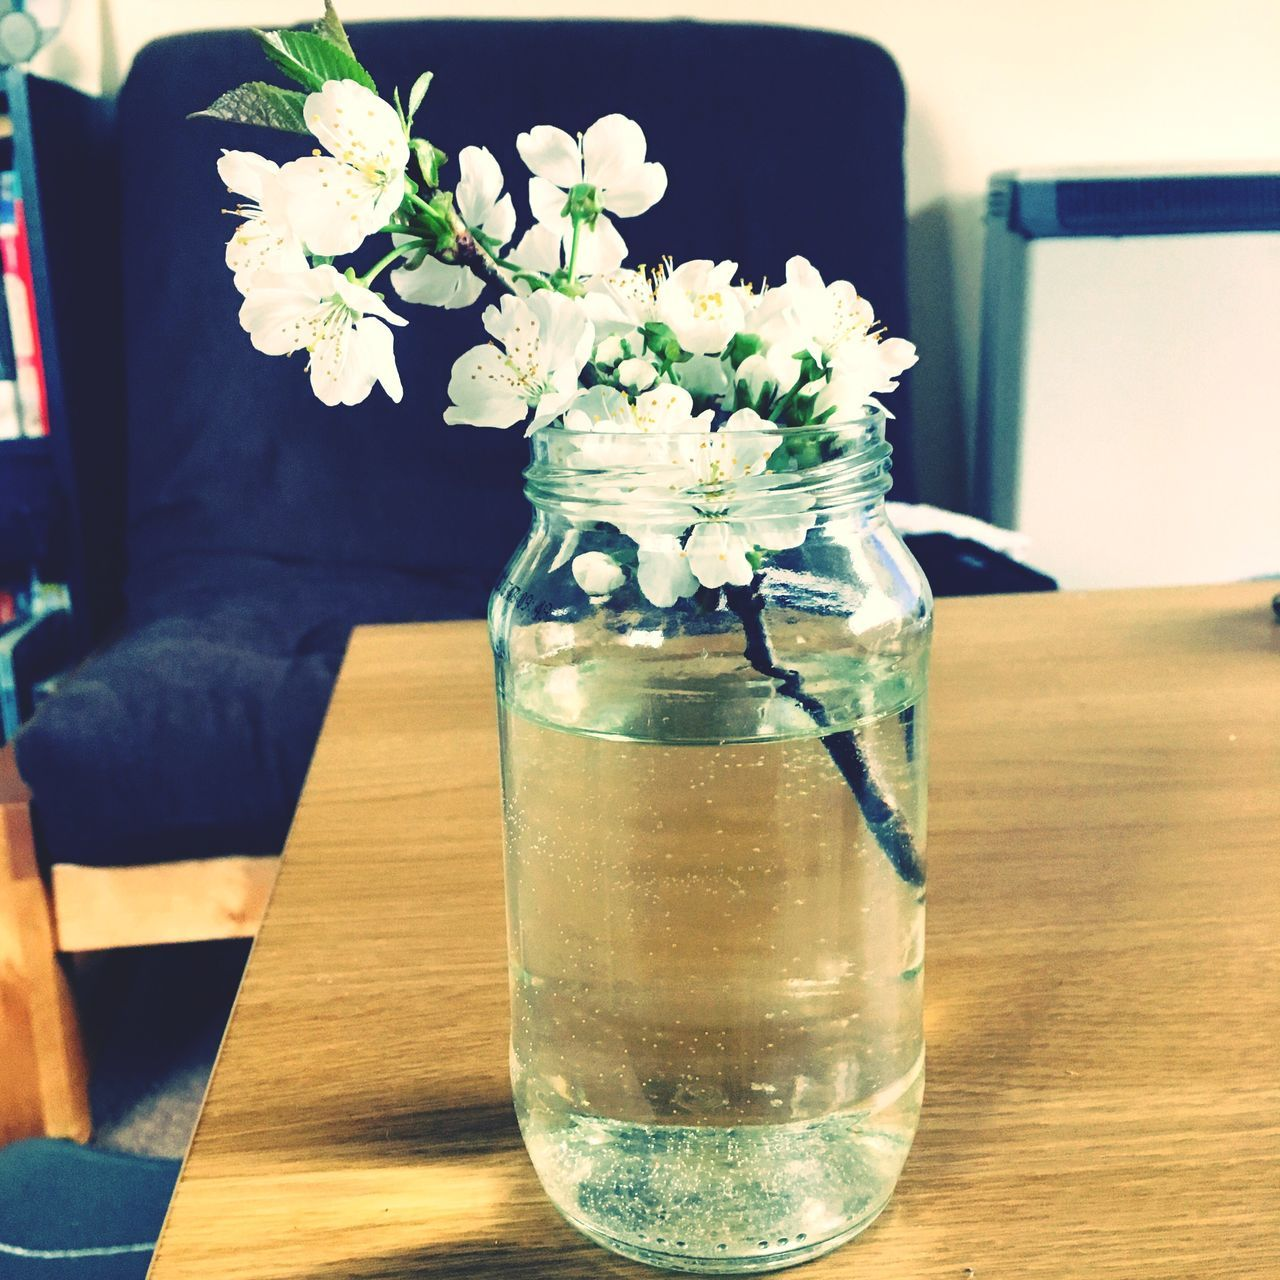 table, flower, drink, freshness, vase, refreshment, drinking glass, food and drink, no people, indoors, close-up, day, wireless technology, nature, fragility